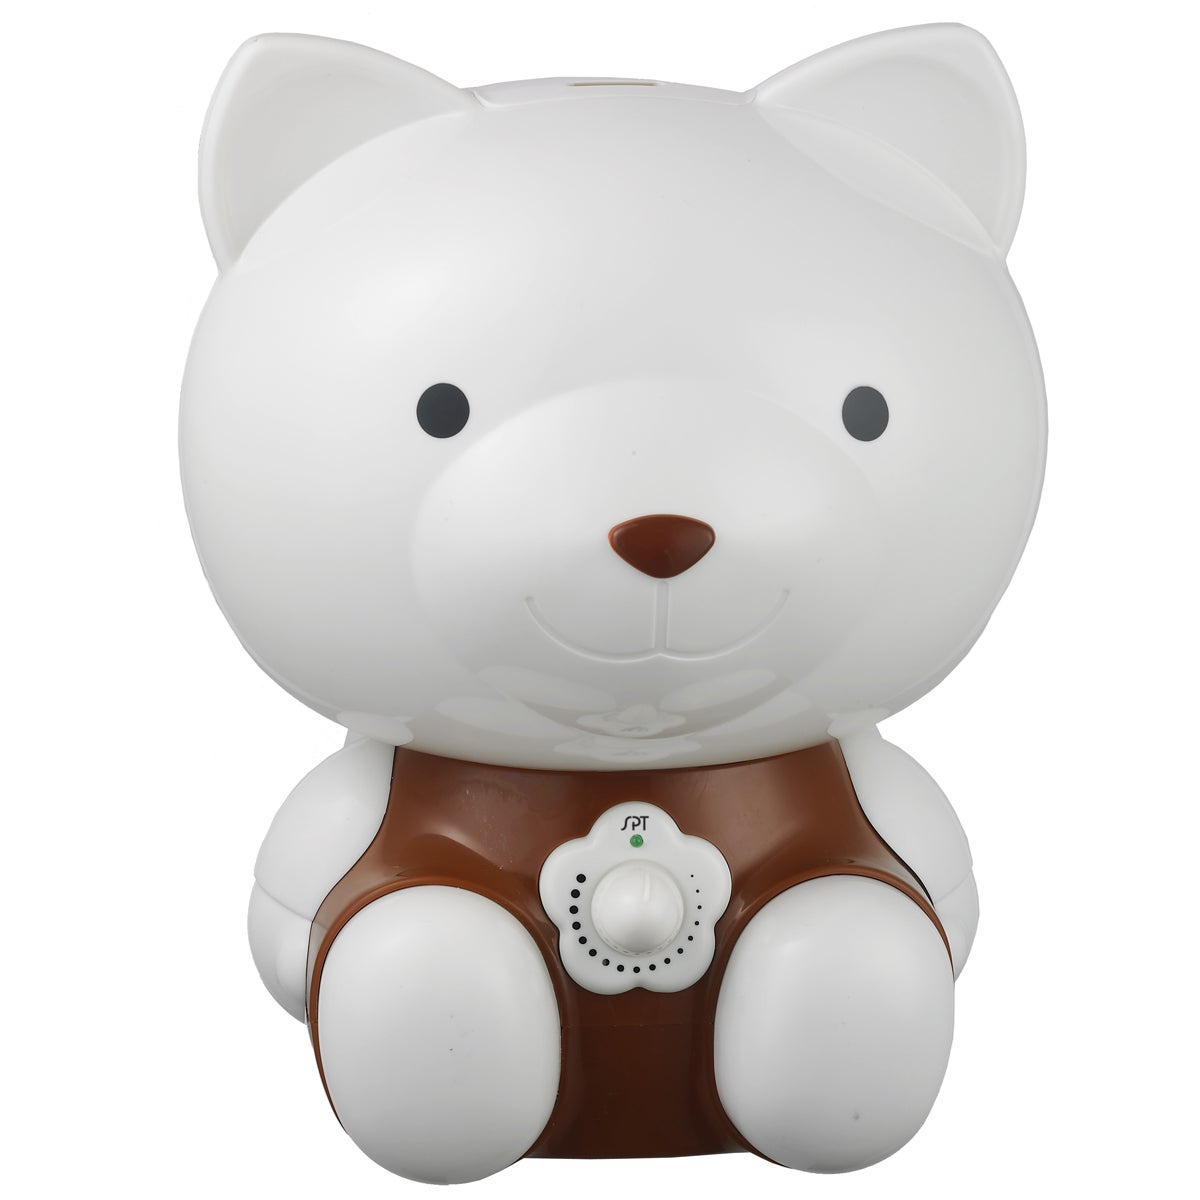 SPT Bear Ultrasonic Humidifier